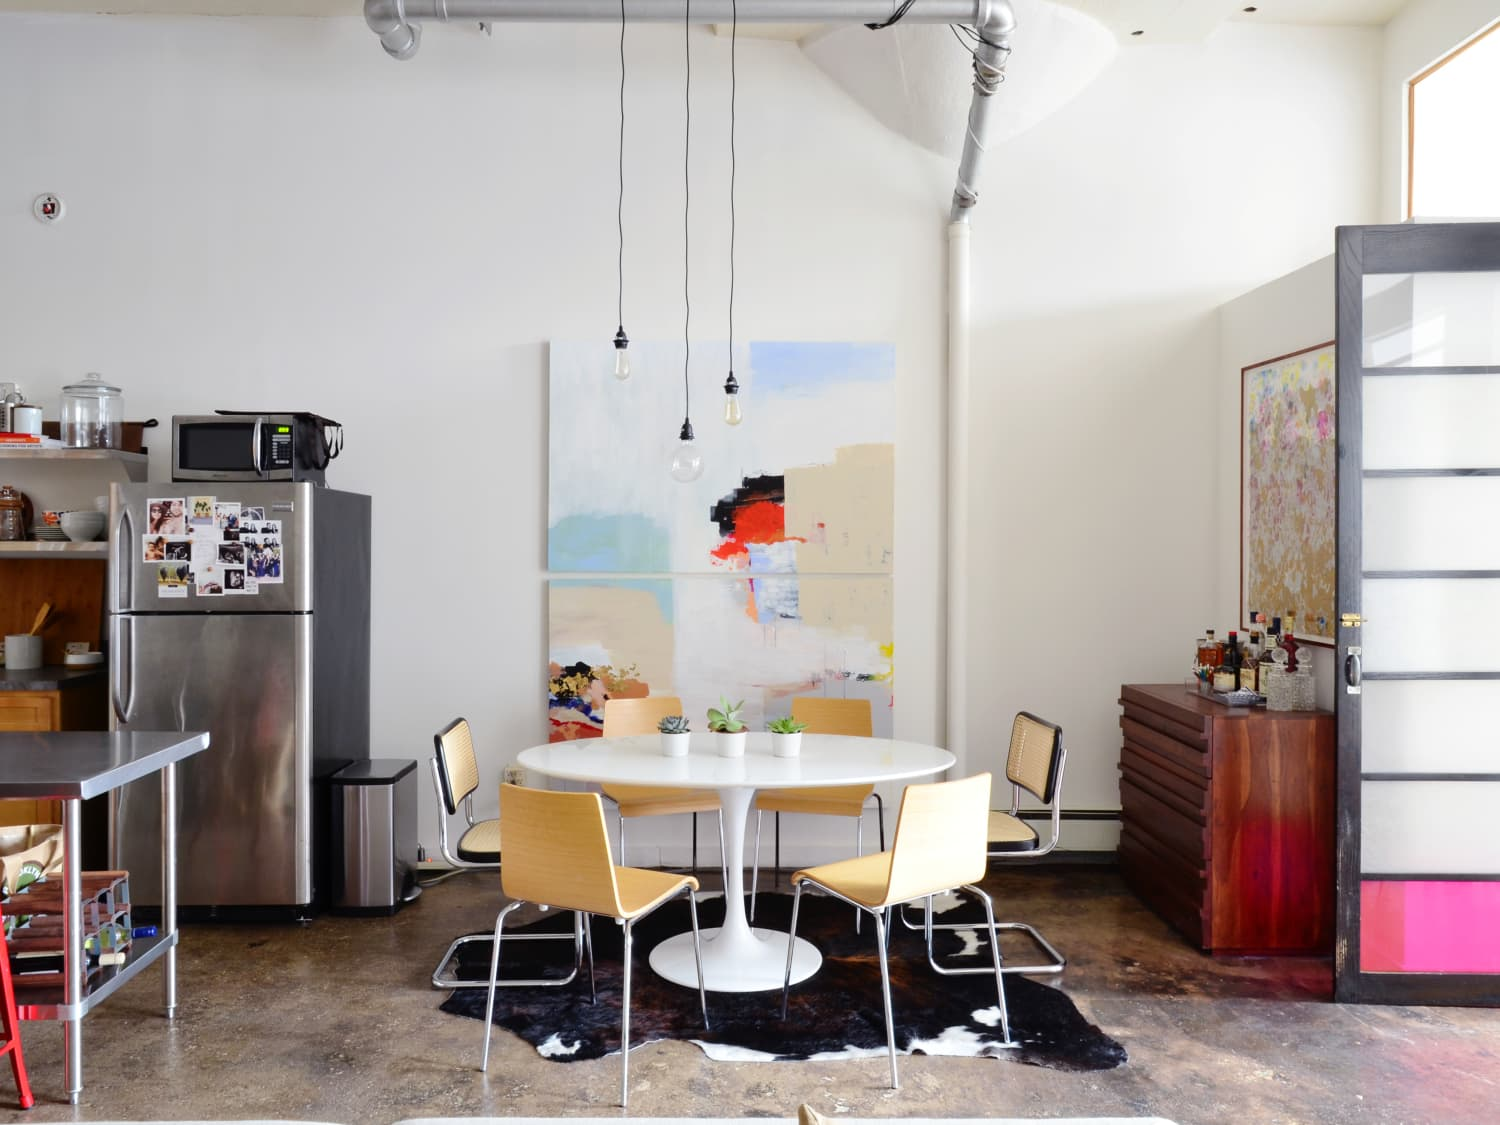 How To: Paint a Concrete Floor | Apartment Therapy